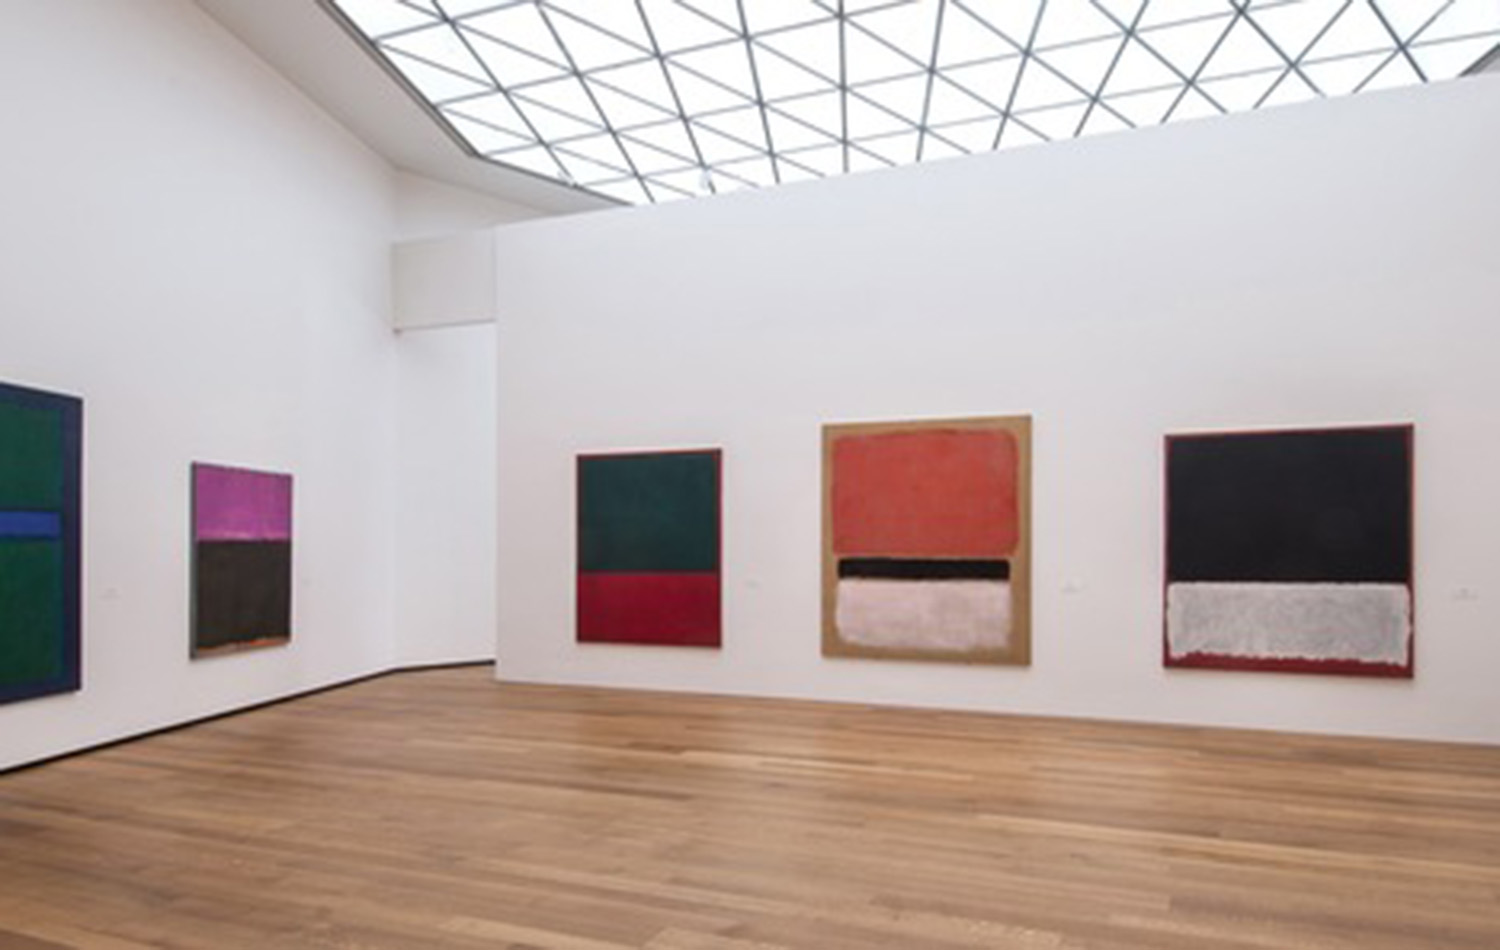 Works by Rothko in the new Tower Gallery (Image: courtesy of the National Gallery of Art, Washington, DC)